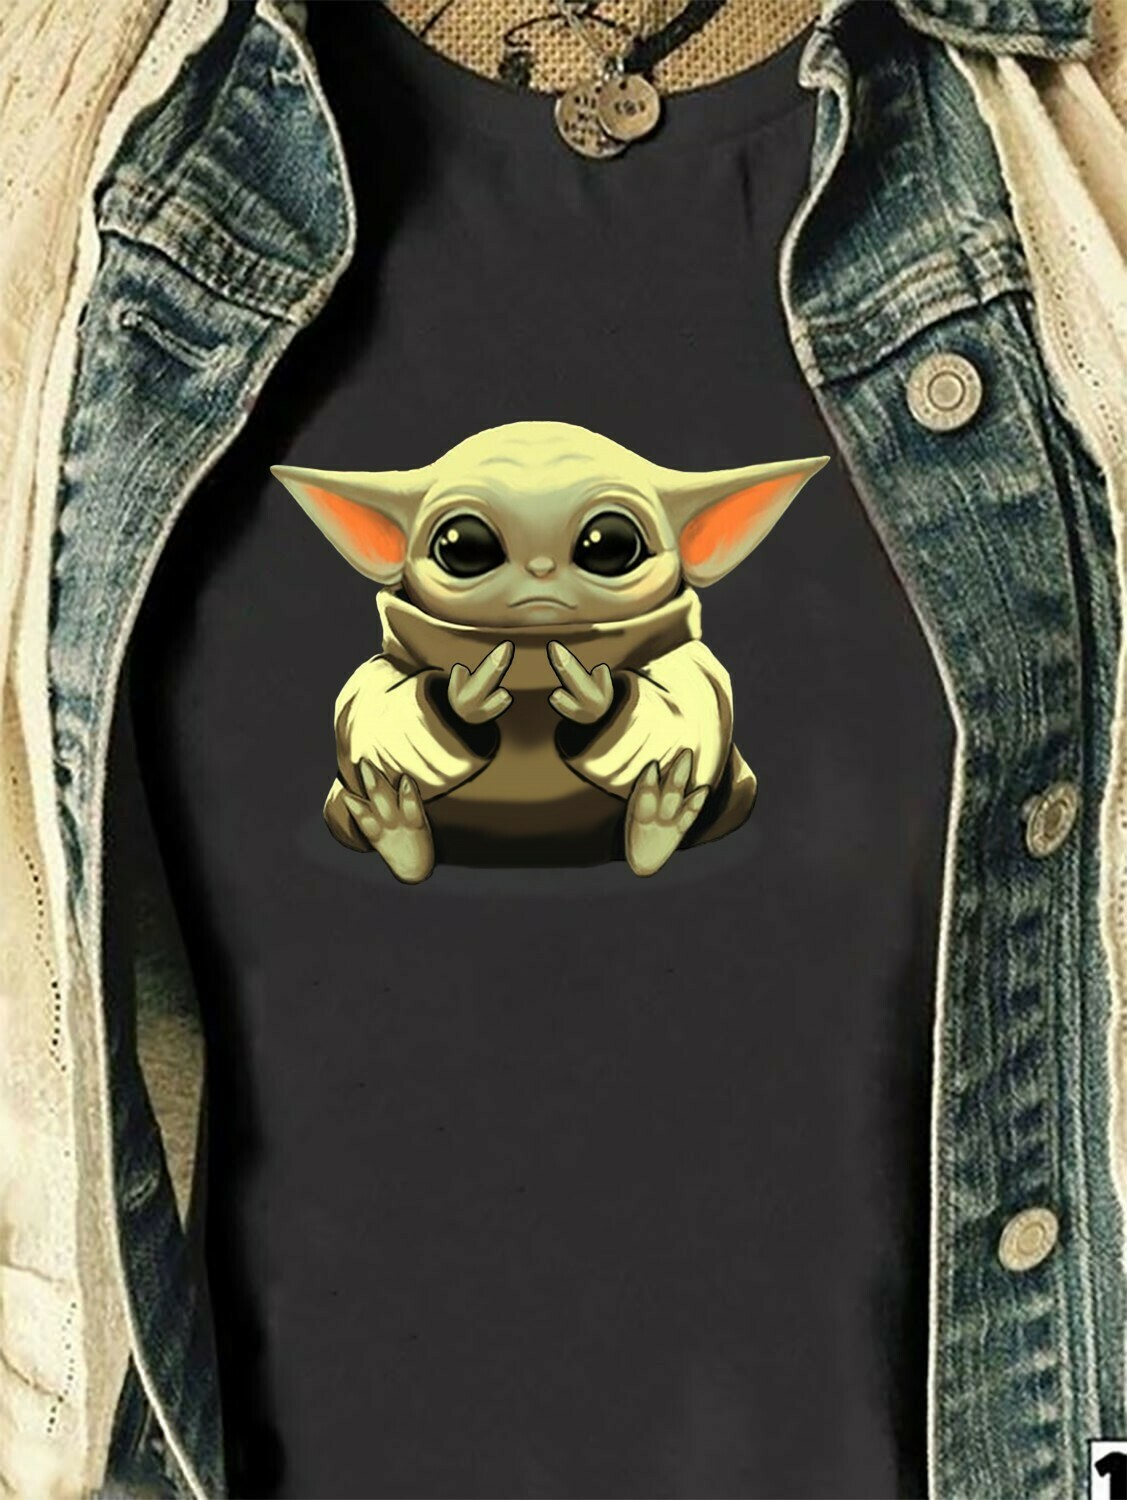 Baby Yoda christmas Spirit Animals,The Mandalorian The Child Discovery Silhouette,Baby Yoda The Child Unknown Species T-Shirt Long Sleeve Sweatshirt Hoodie Jolly Family Gifts